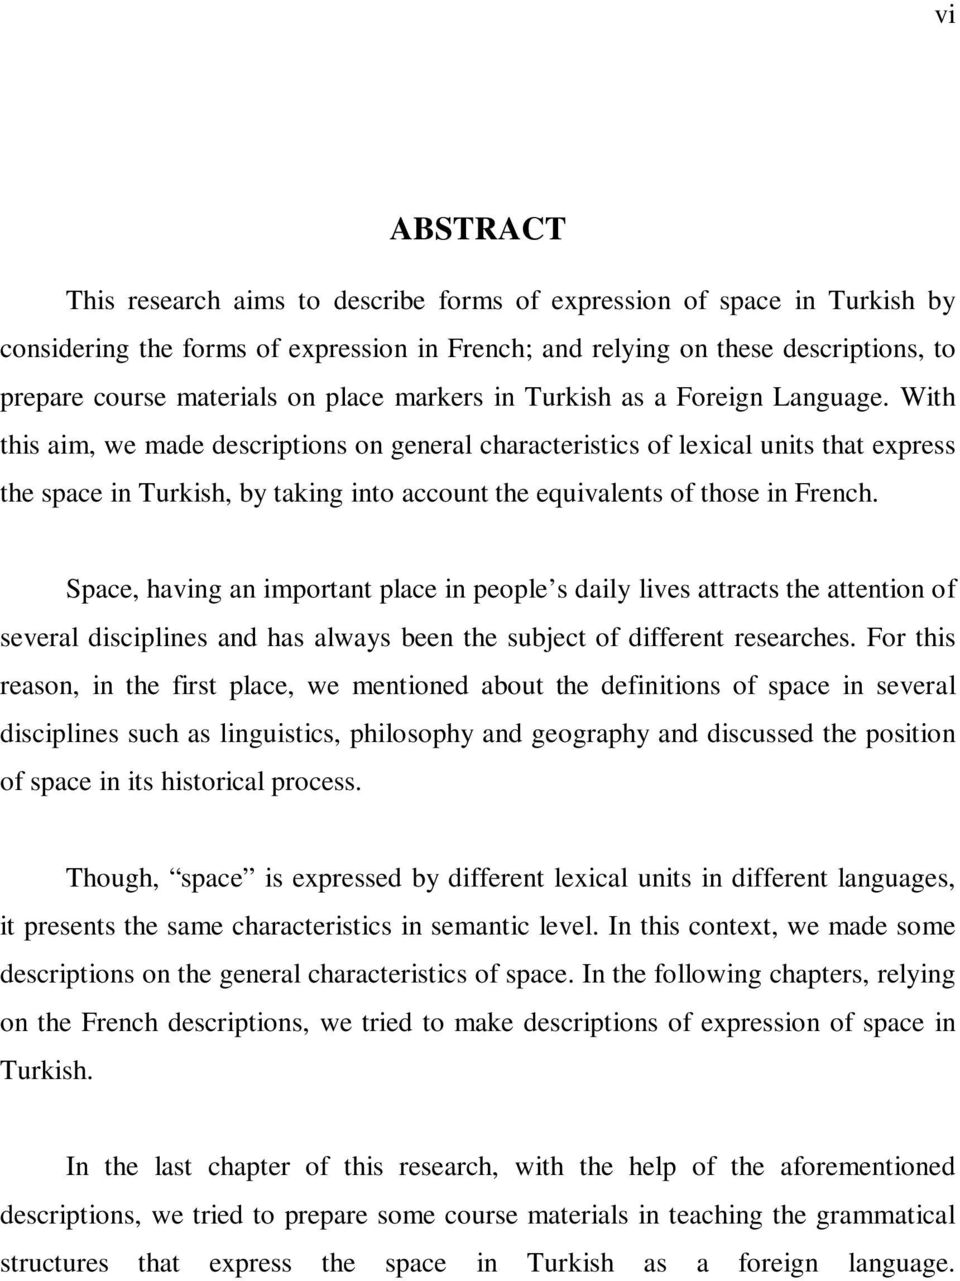 With this aim, we made descriptions on general characteristics of lexical units that express the space in Turkish, by taking into account the equivalents of those in French.